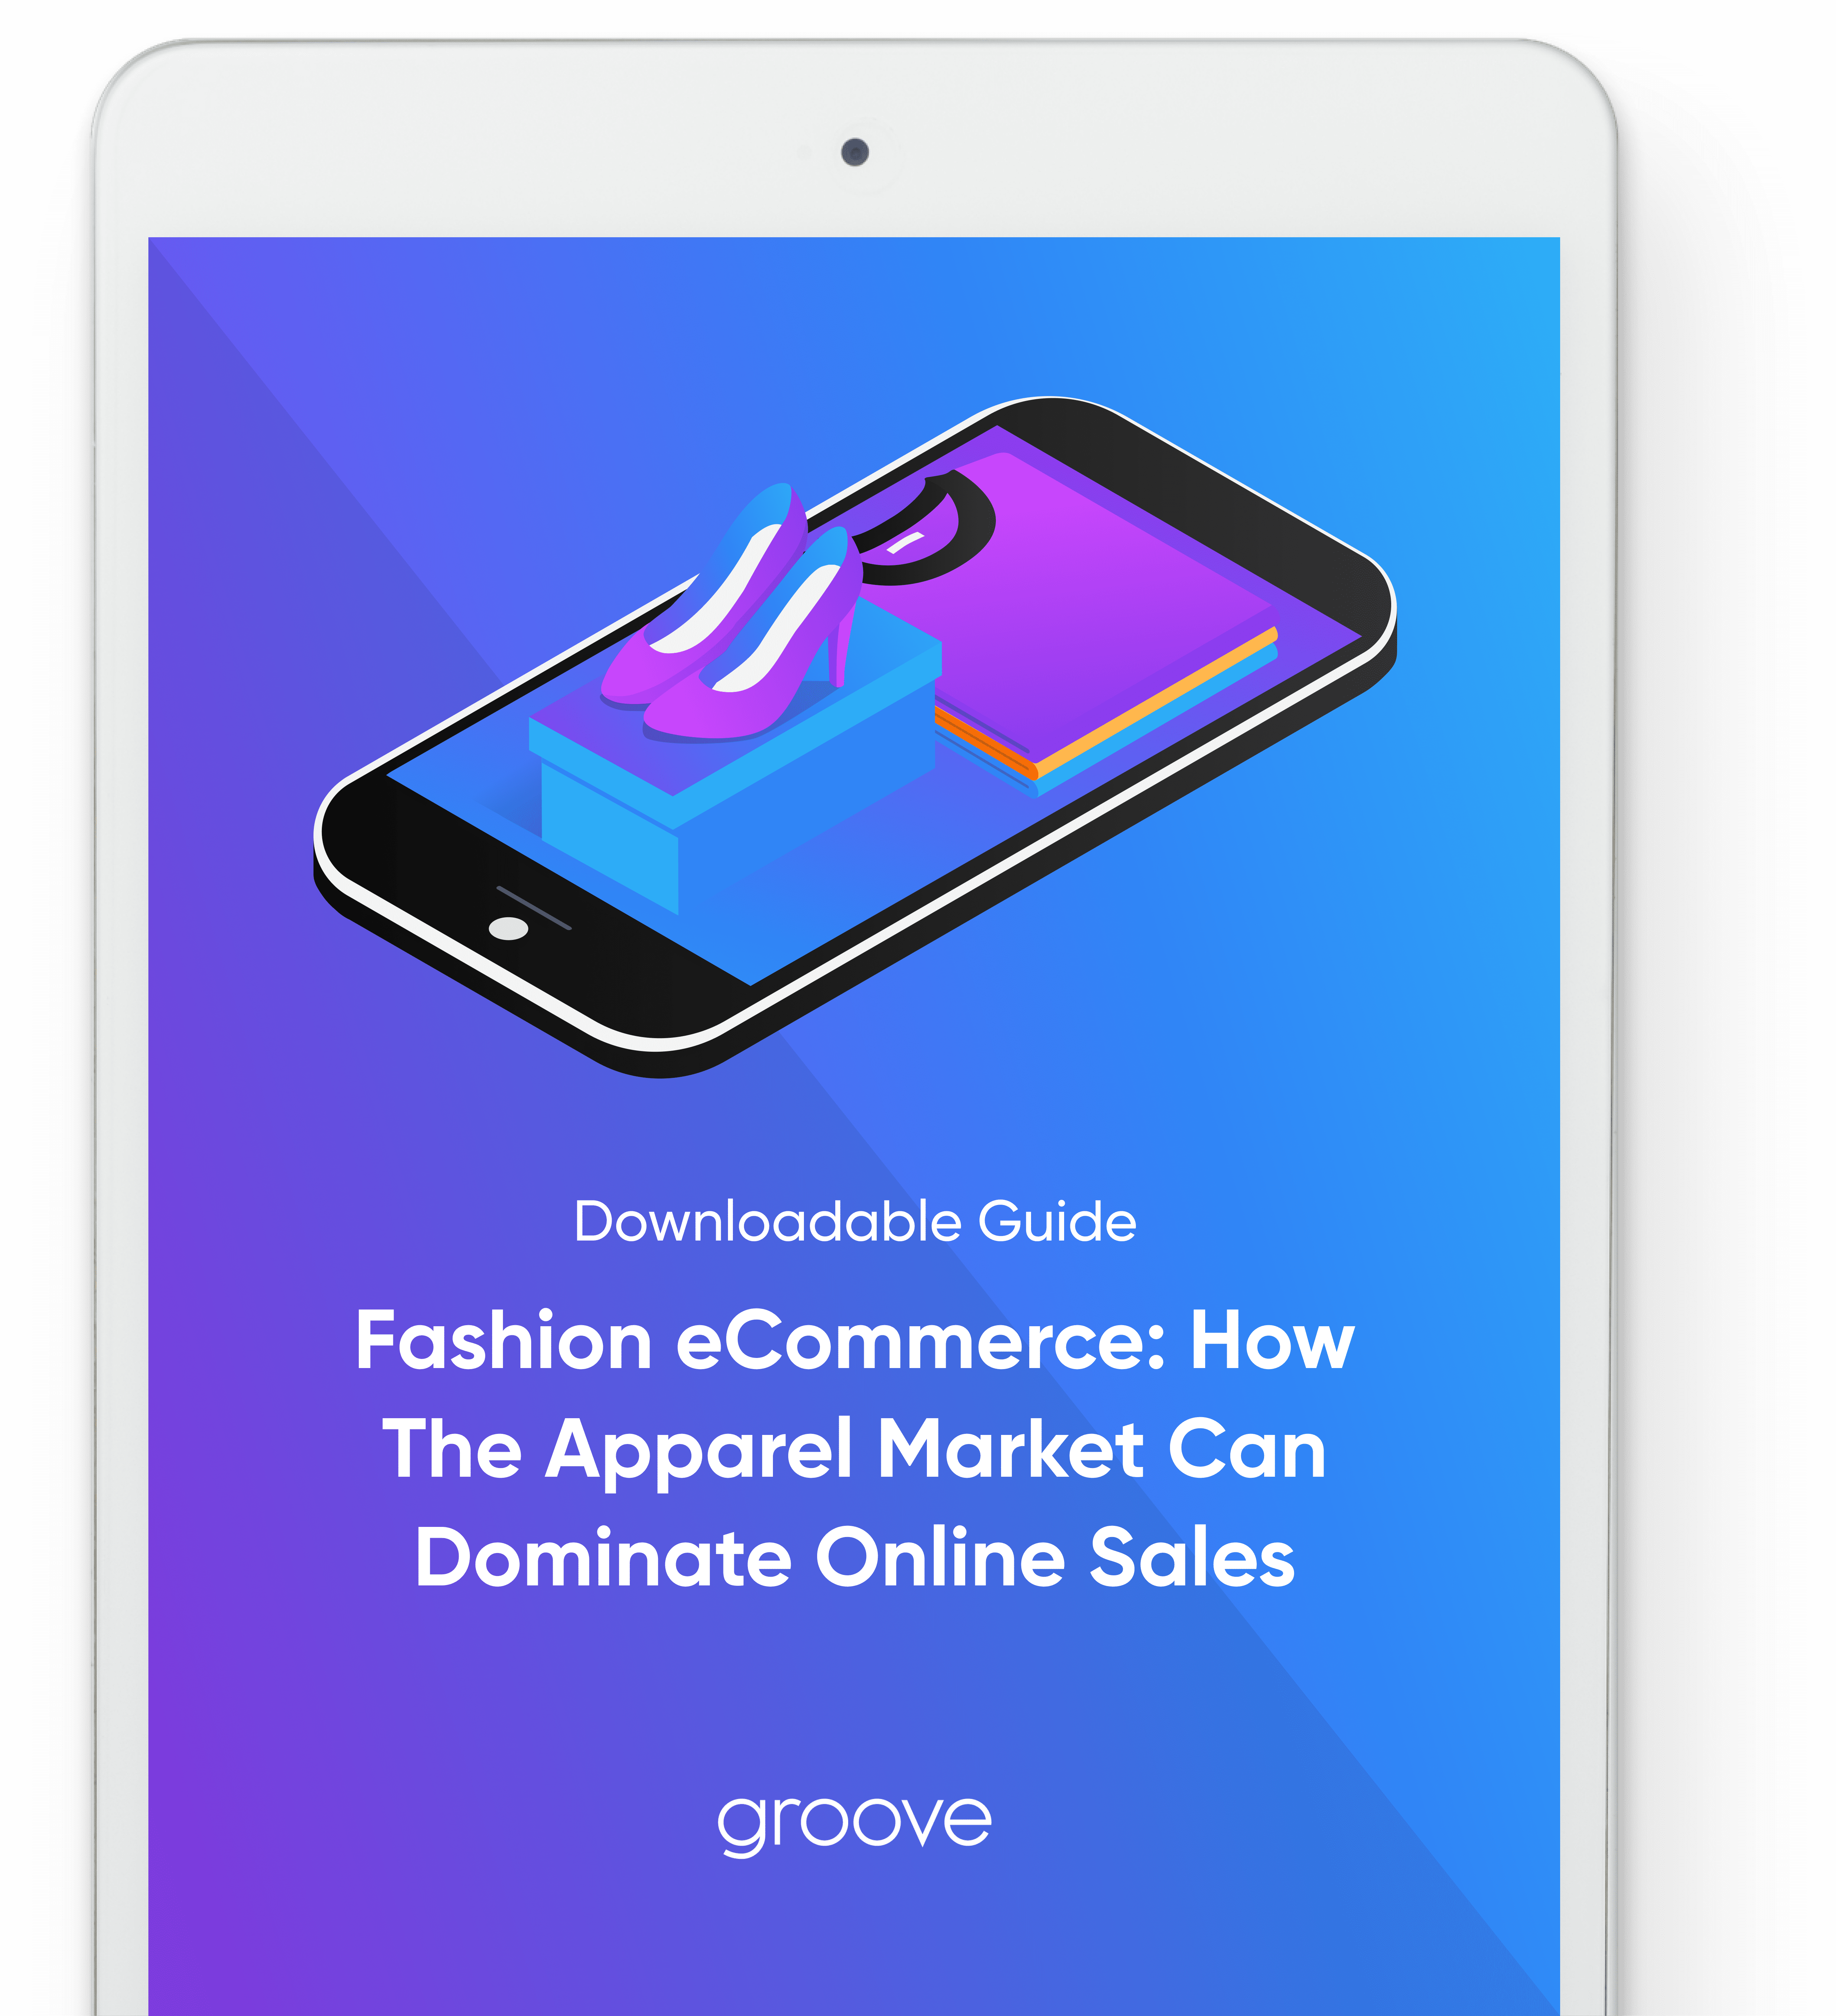 Fashion eCommerce Guide: How The Apparel Market Can Dominate Online Sales